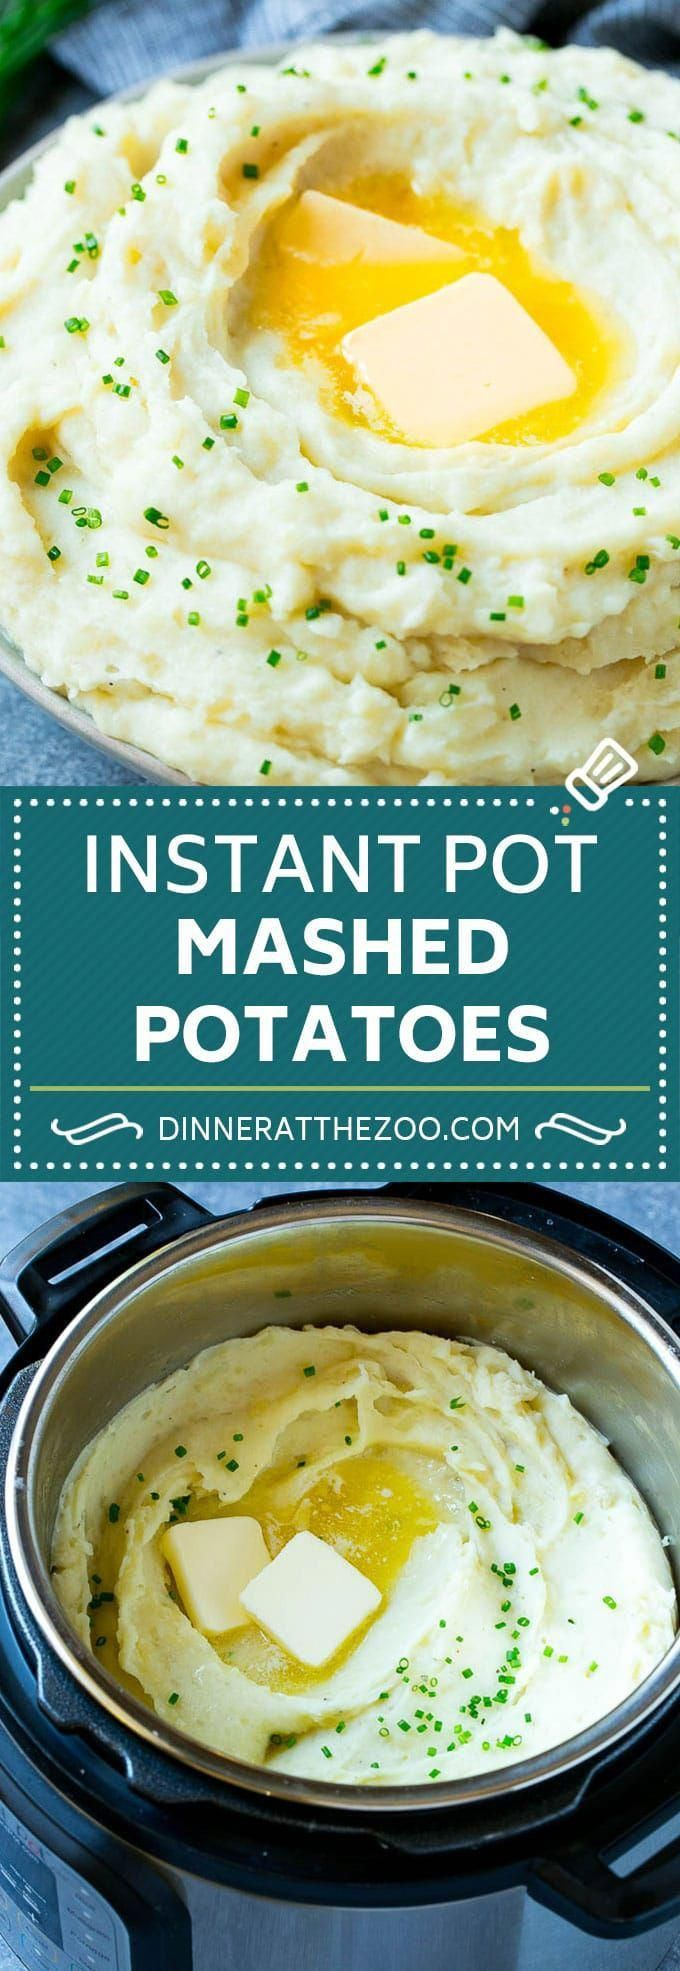 Instant Pot Mashed Potatoes Recipe | Pressure Cooker Mashed Potatoes | Easy Mash... -